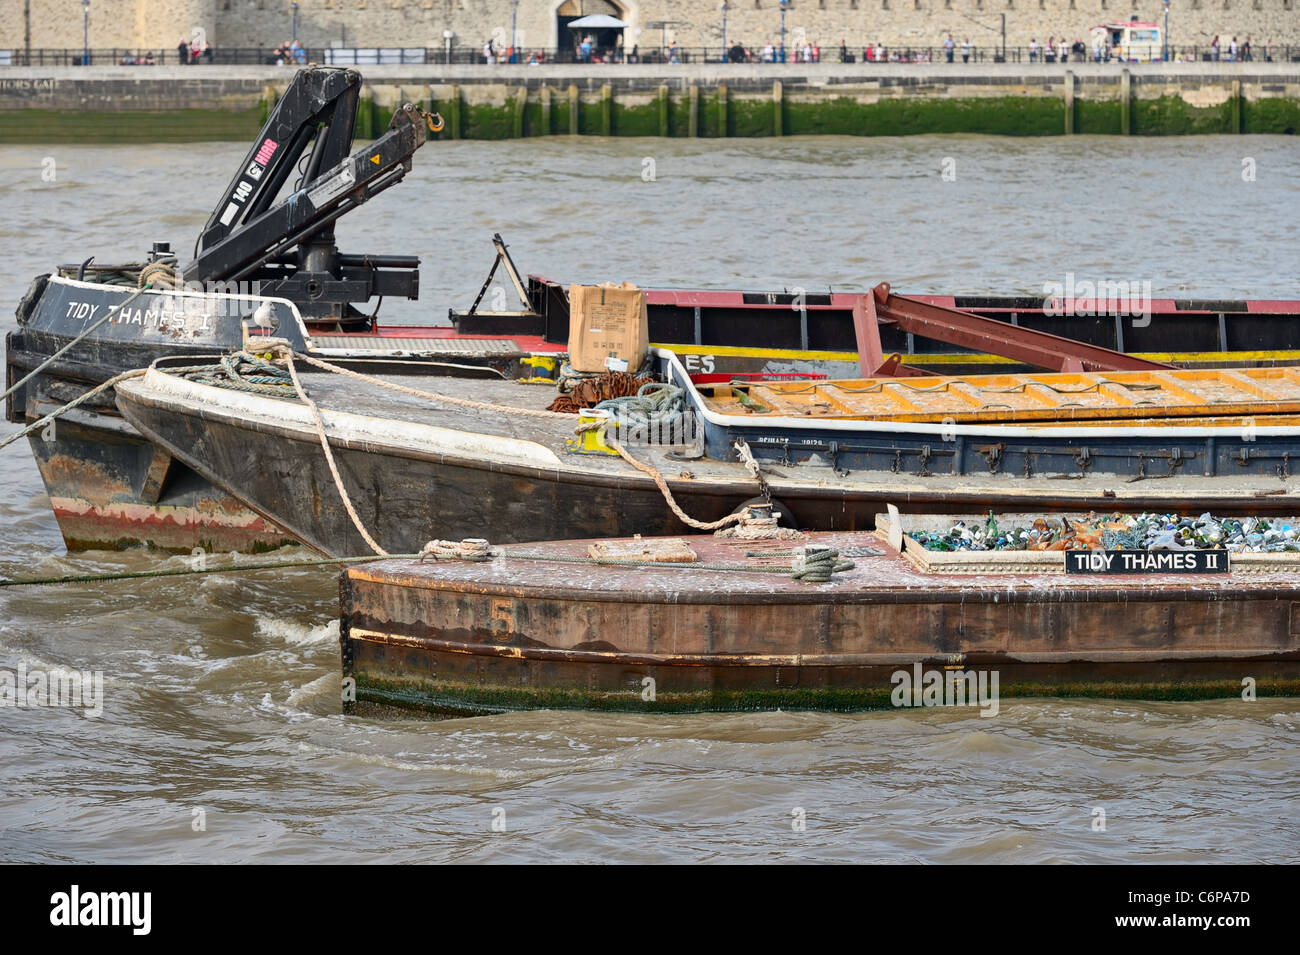 Detail of waste disposal barges on the River Thames, London, England, UK, Europe - Stock Image